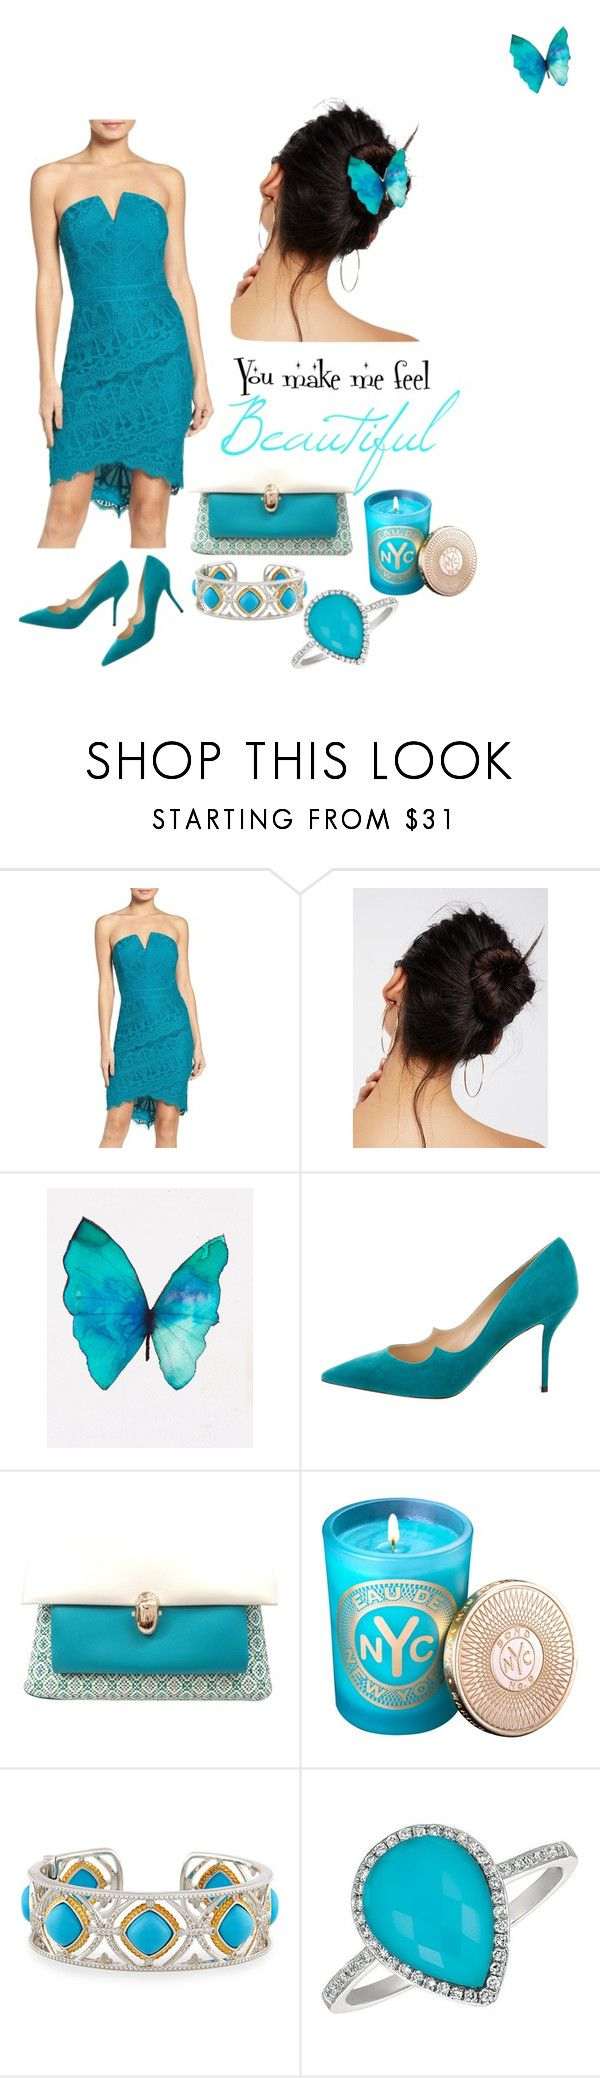 """Blue Bliss"" by uttarika-kumaran ❤ liked on Polyvore featuring Adelyn Rae, Free People, Paul Andrew, Christian Louboutin, Bond No. 9, JudeFrances and Morris & David"